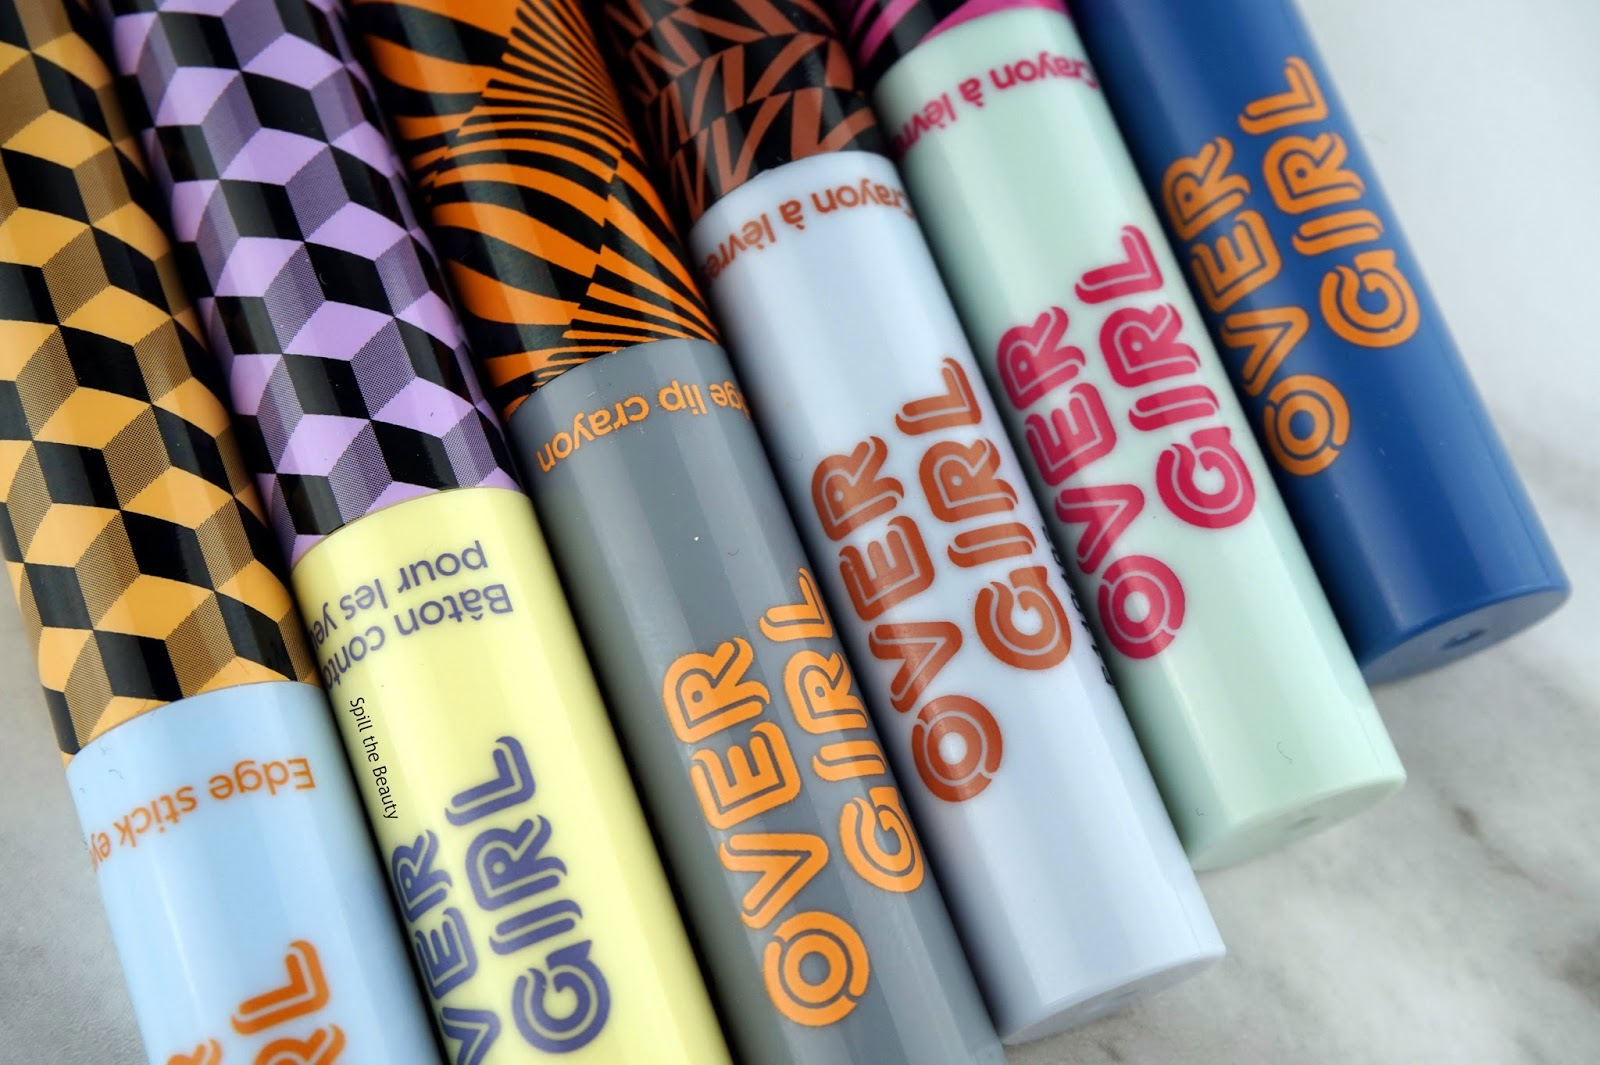 THEFACESHOP over girl egdge lip crayon stick eyes review swatches